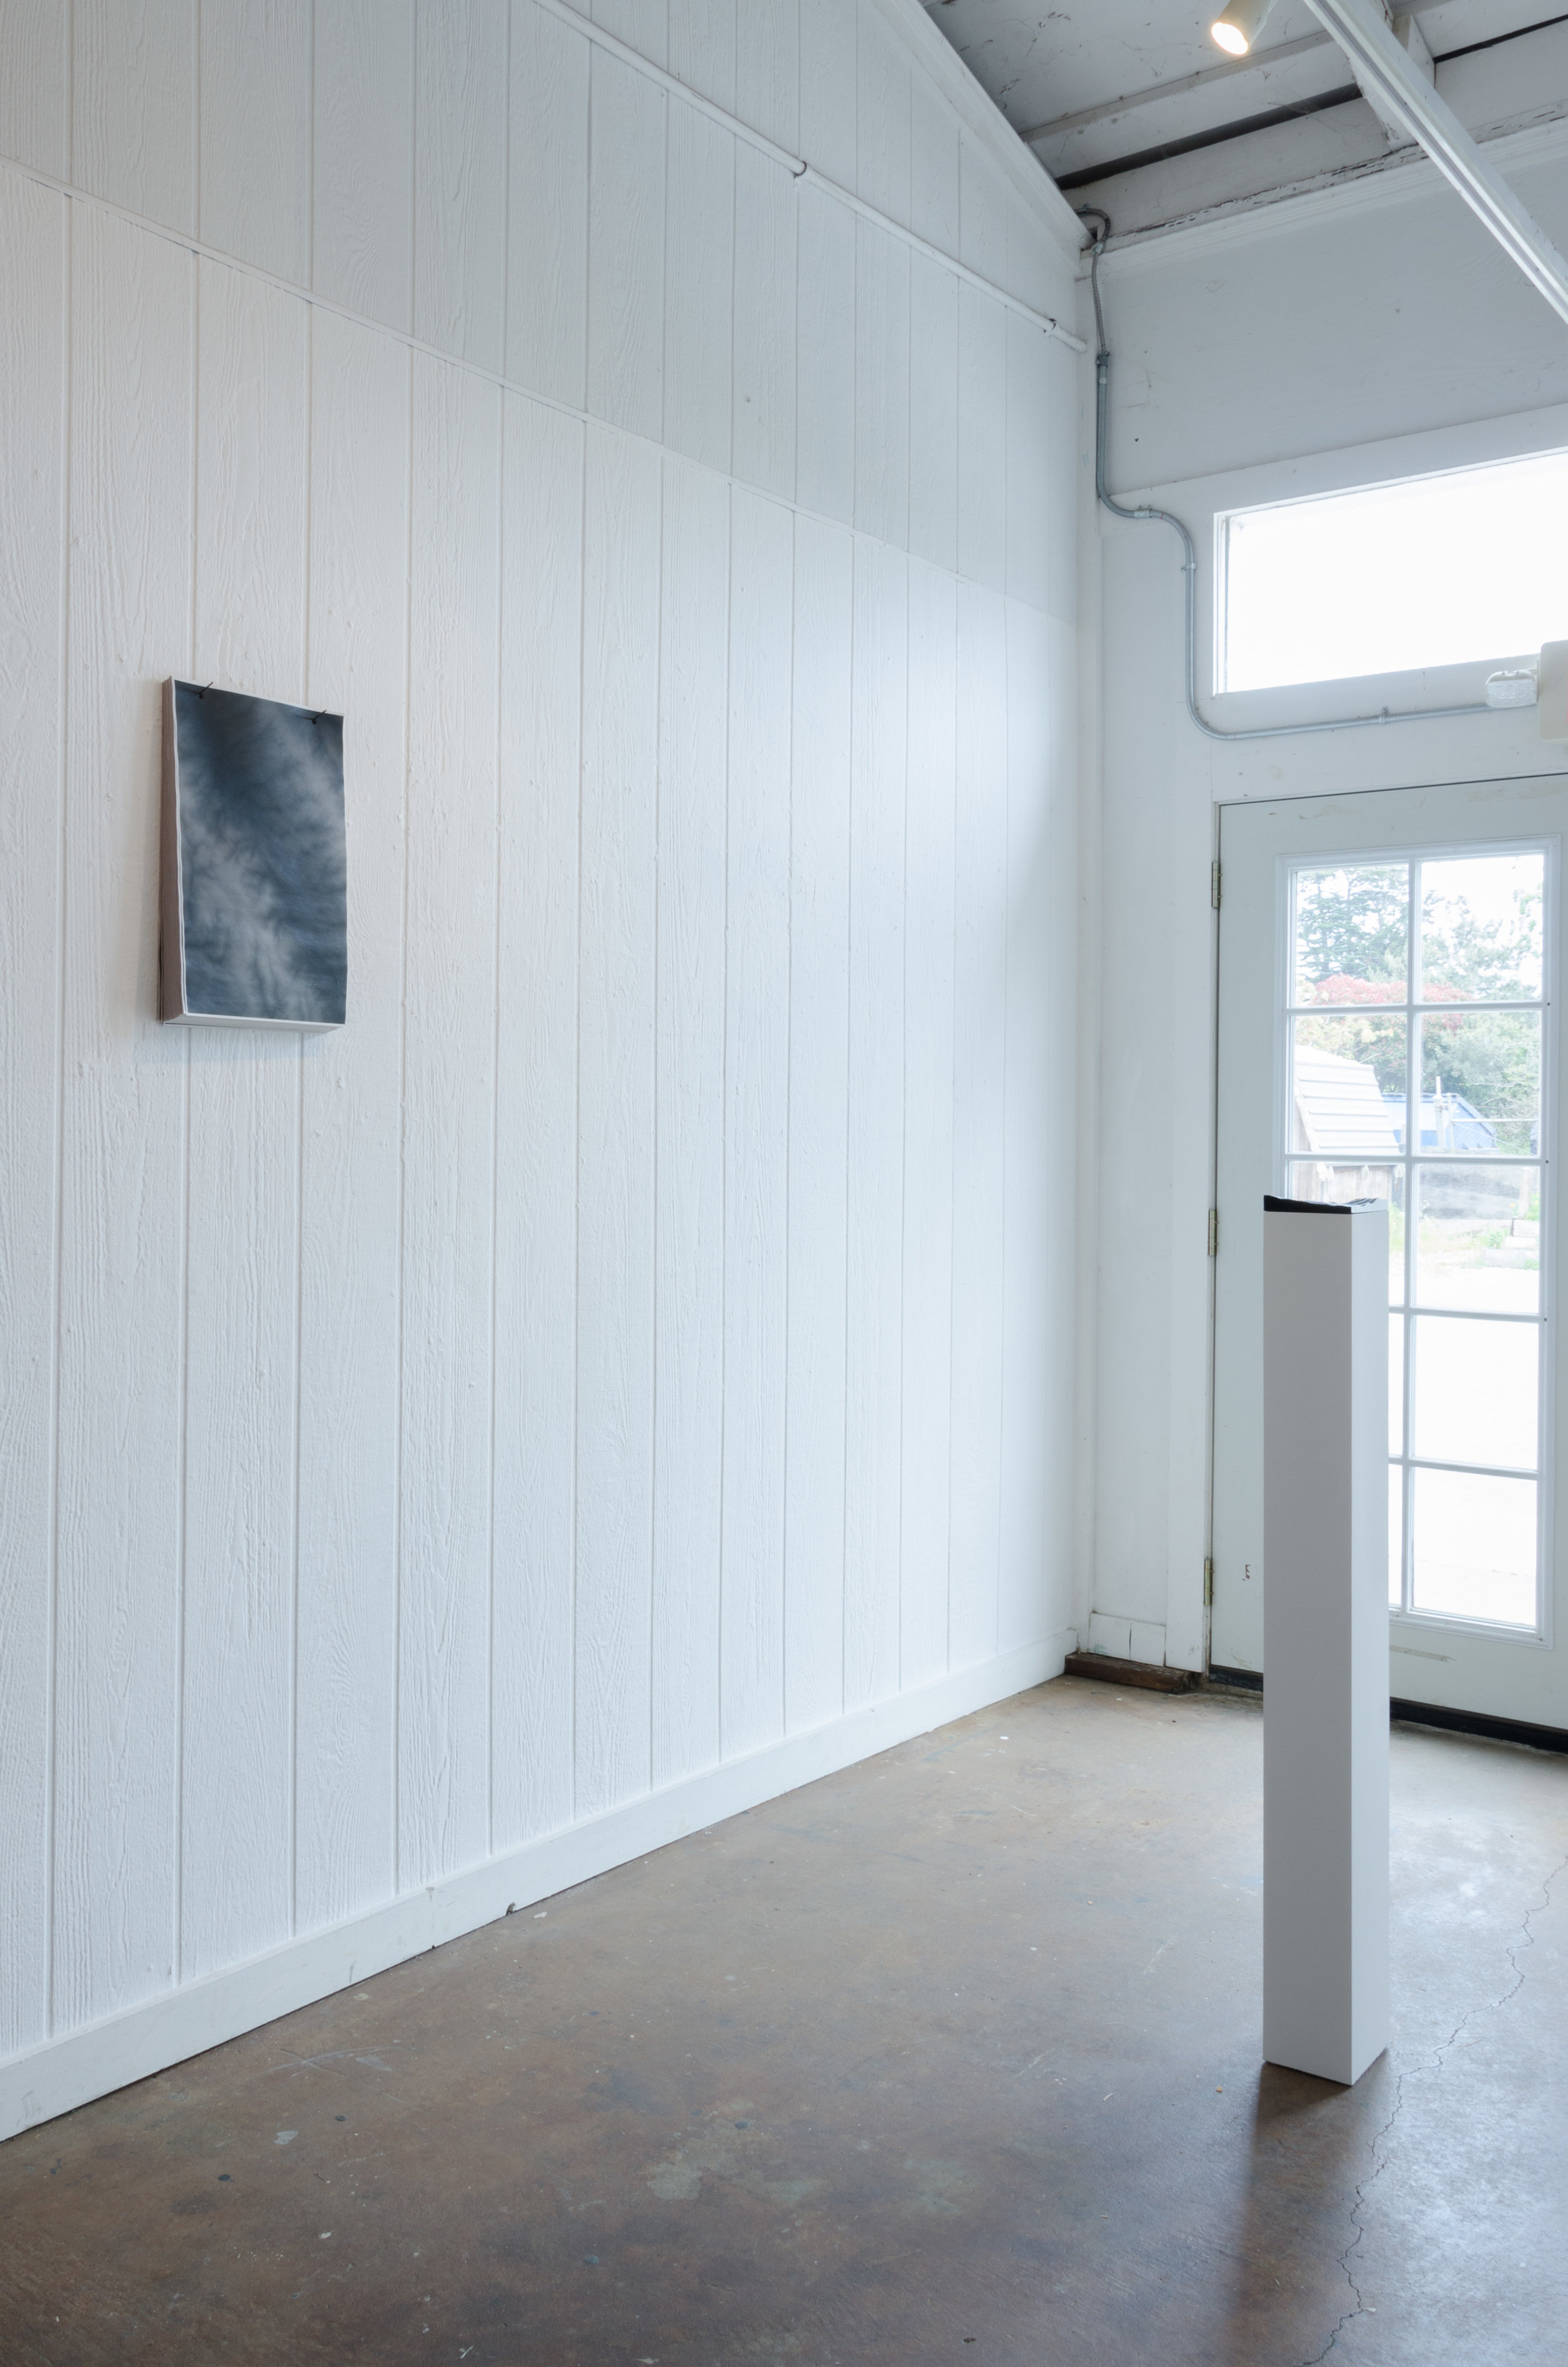 Installation View from origins at Toby's Gallery   (from left to right)  untitled, 13 Curves,  Point Reyes Station 2019